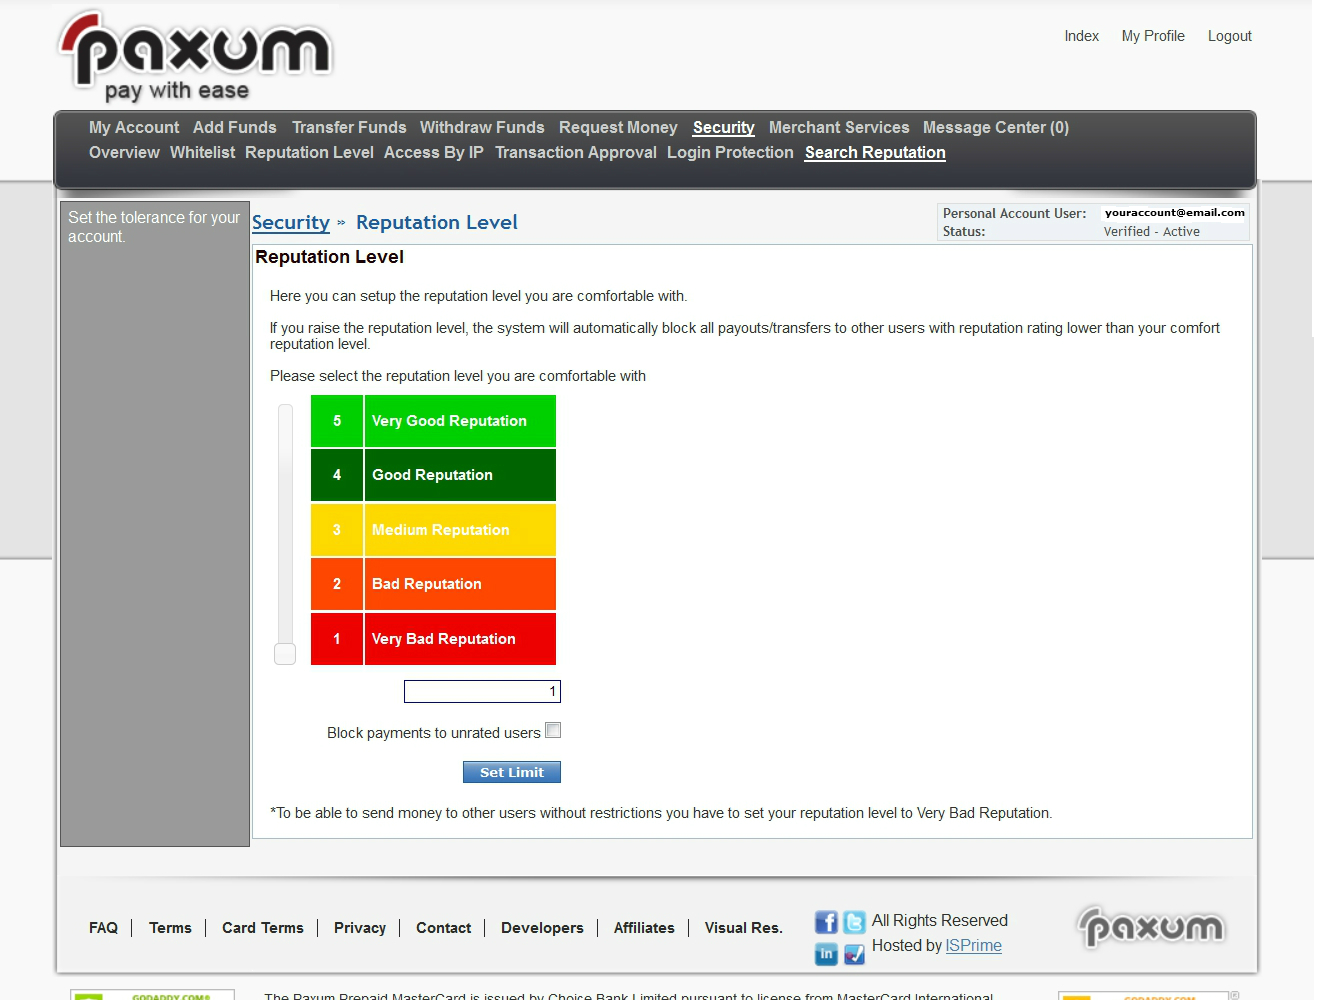 paxum-security-reputation-level-full-1